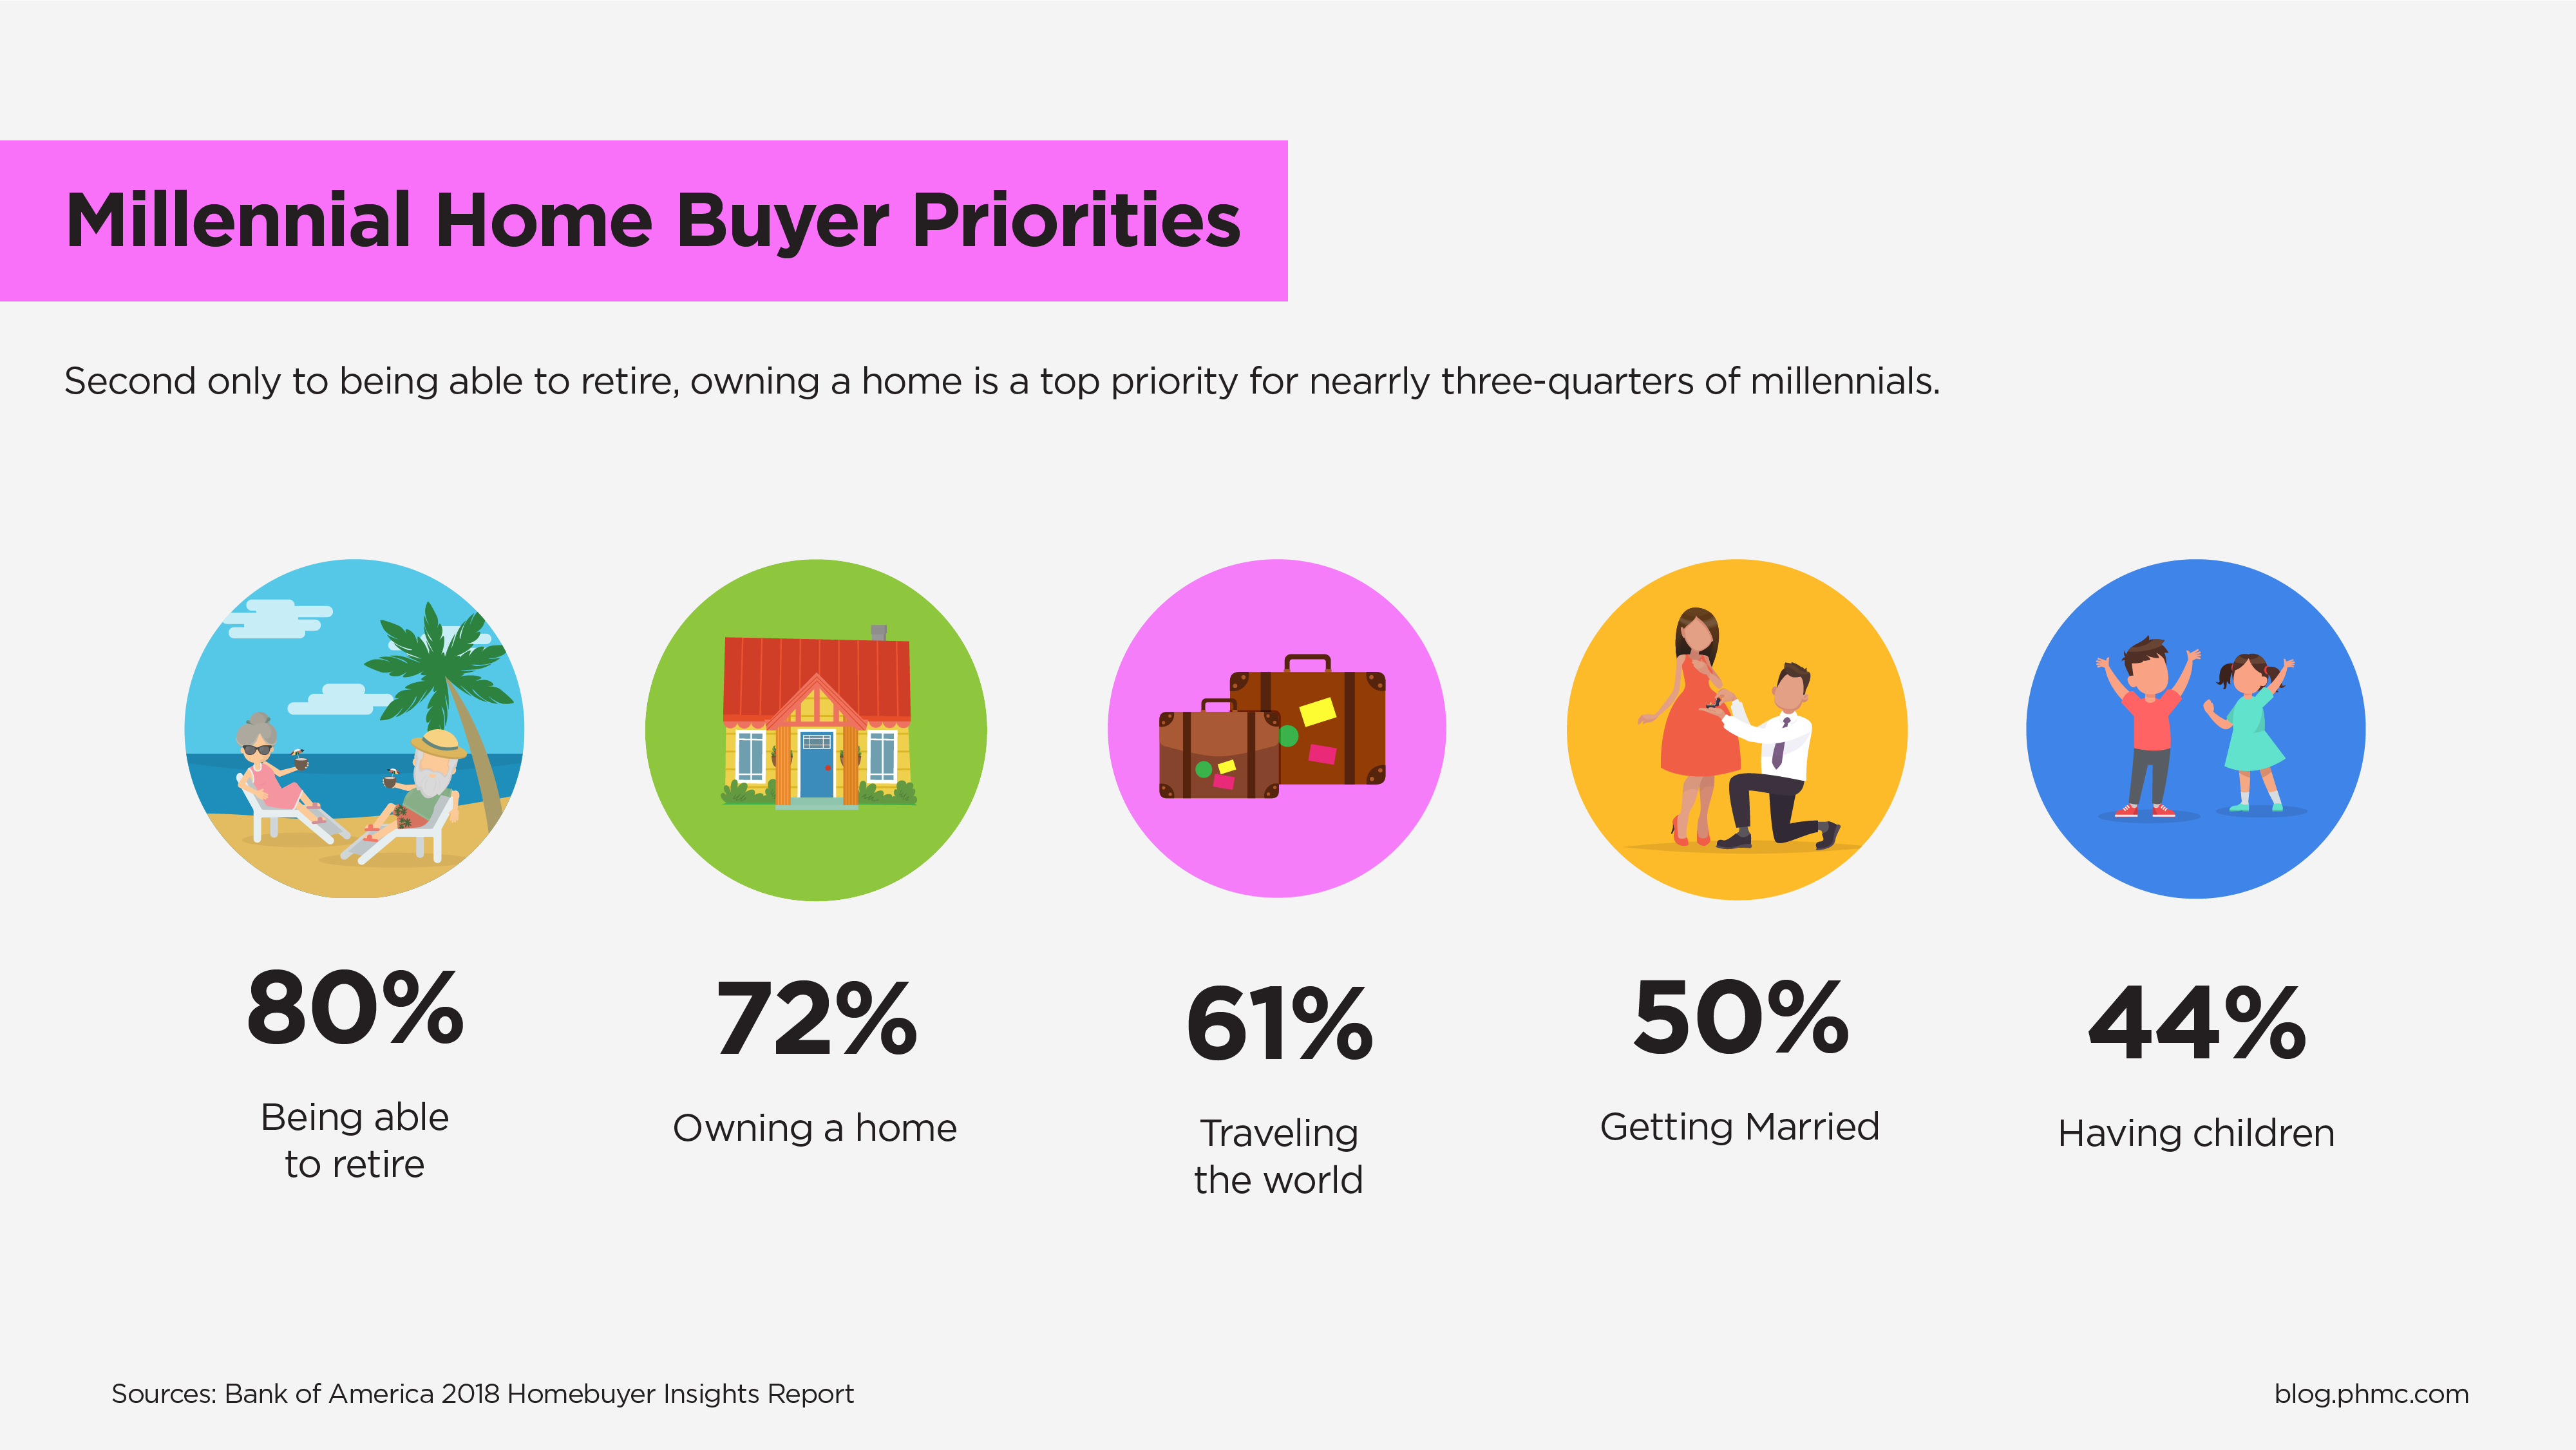 Millennial Home Buyer Priorities suBank of America Homebuyer Insights report. Second only to being able to reitre, owning a home is a top priority for nearly three-quarters of millennials.